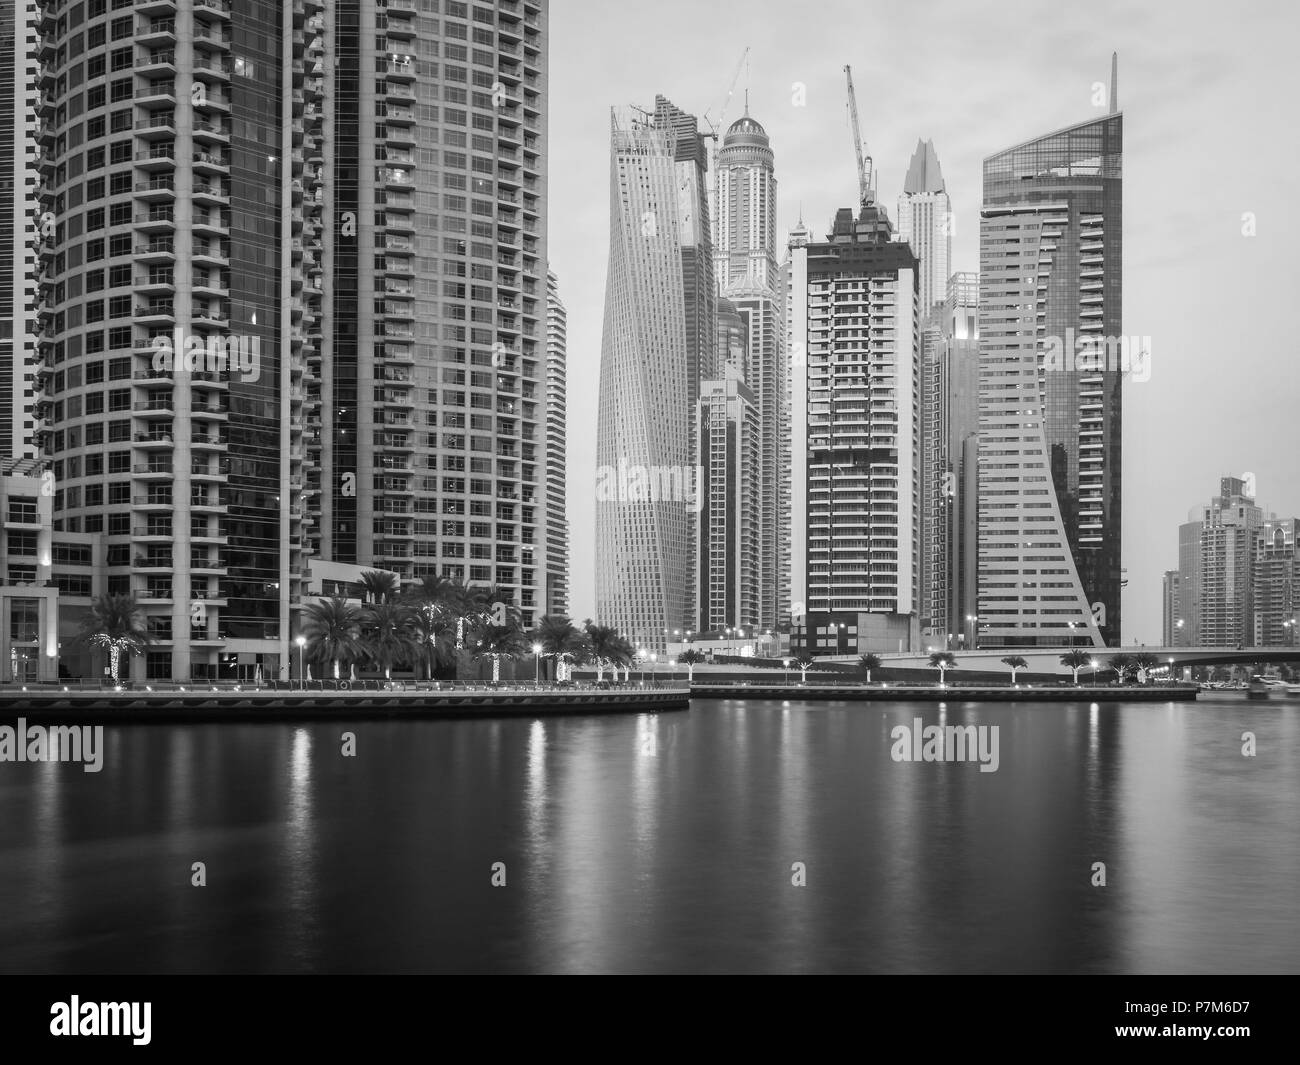 Monochrome panorama of the skyscrapers at Dubai Marina, United Arab Emirates - Stock Image